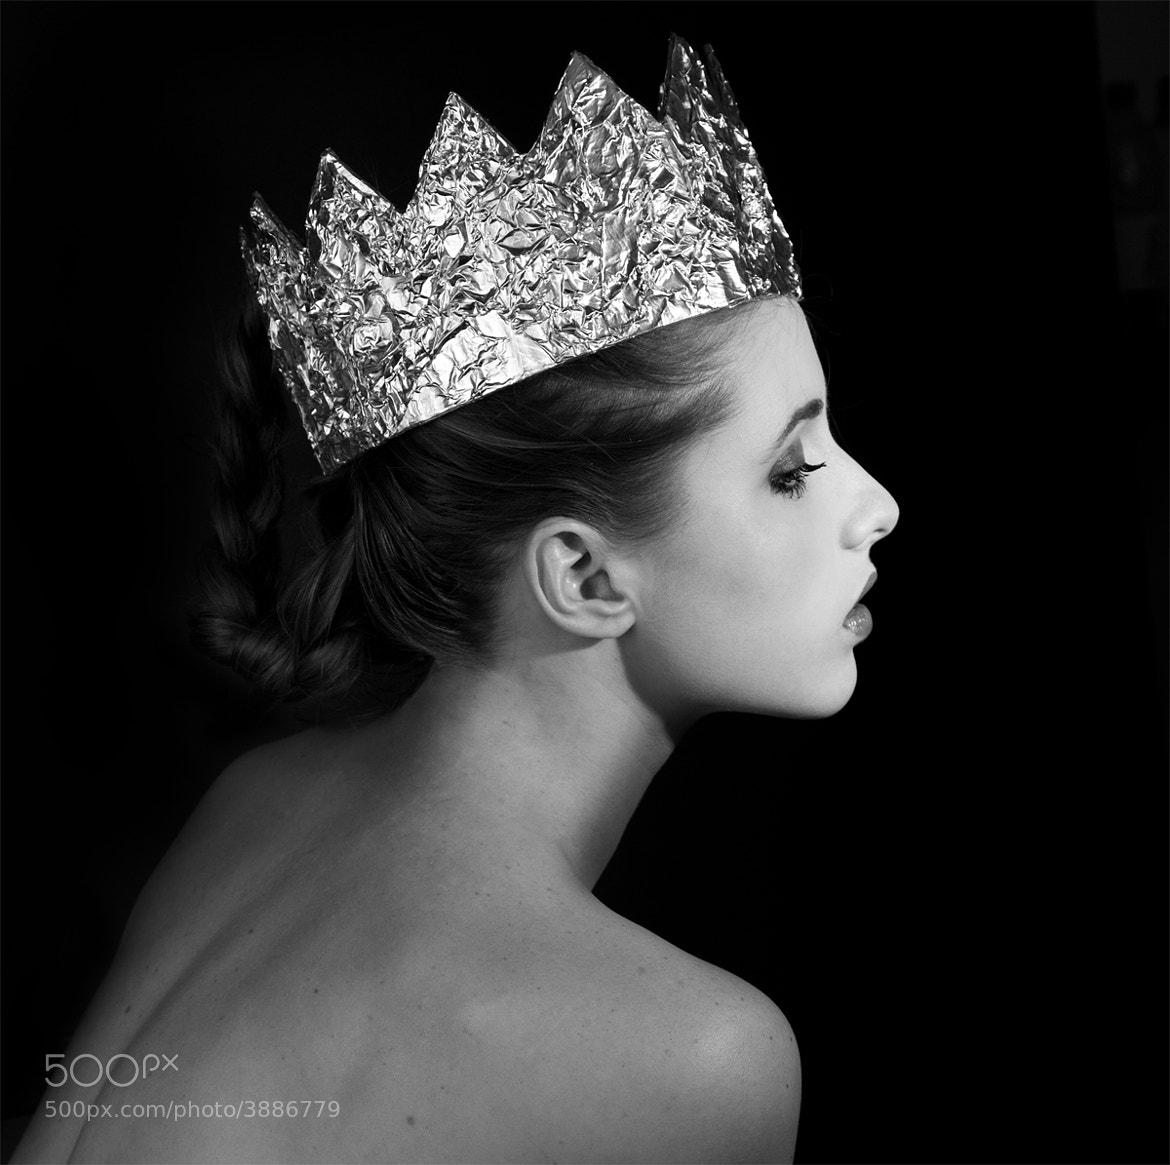 Photograph no queen in this world by Anastasia Osminkina on 500px